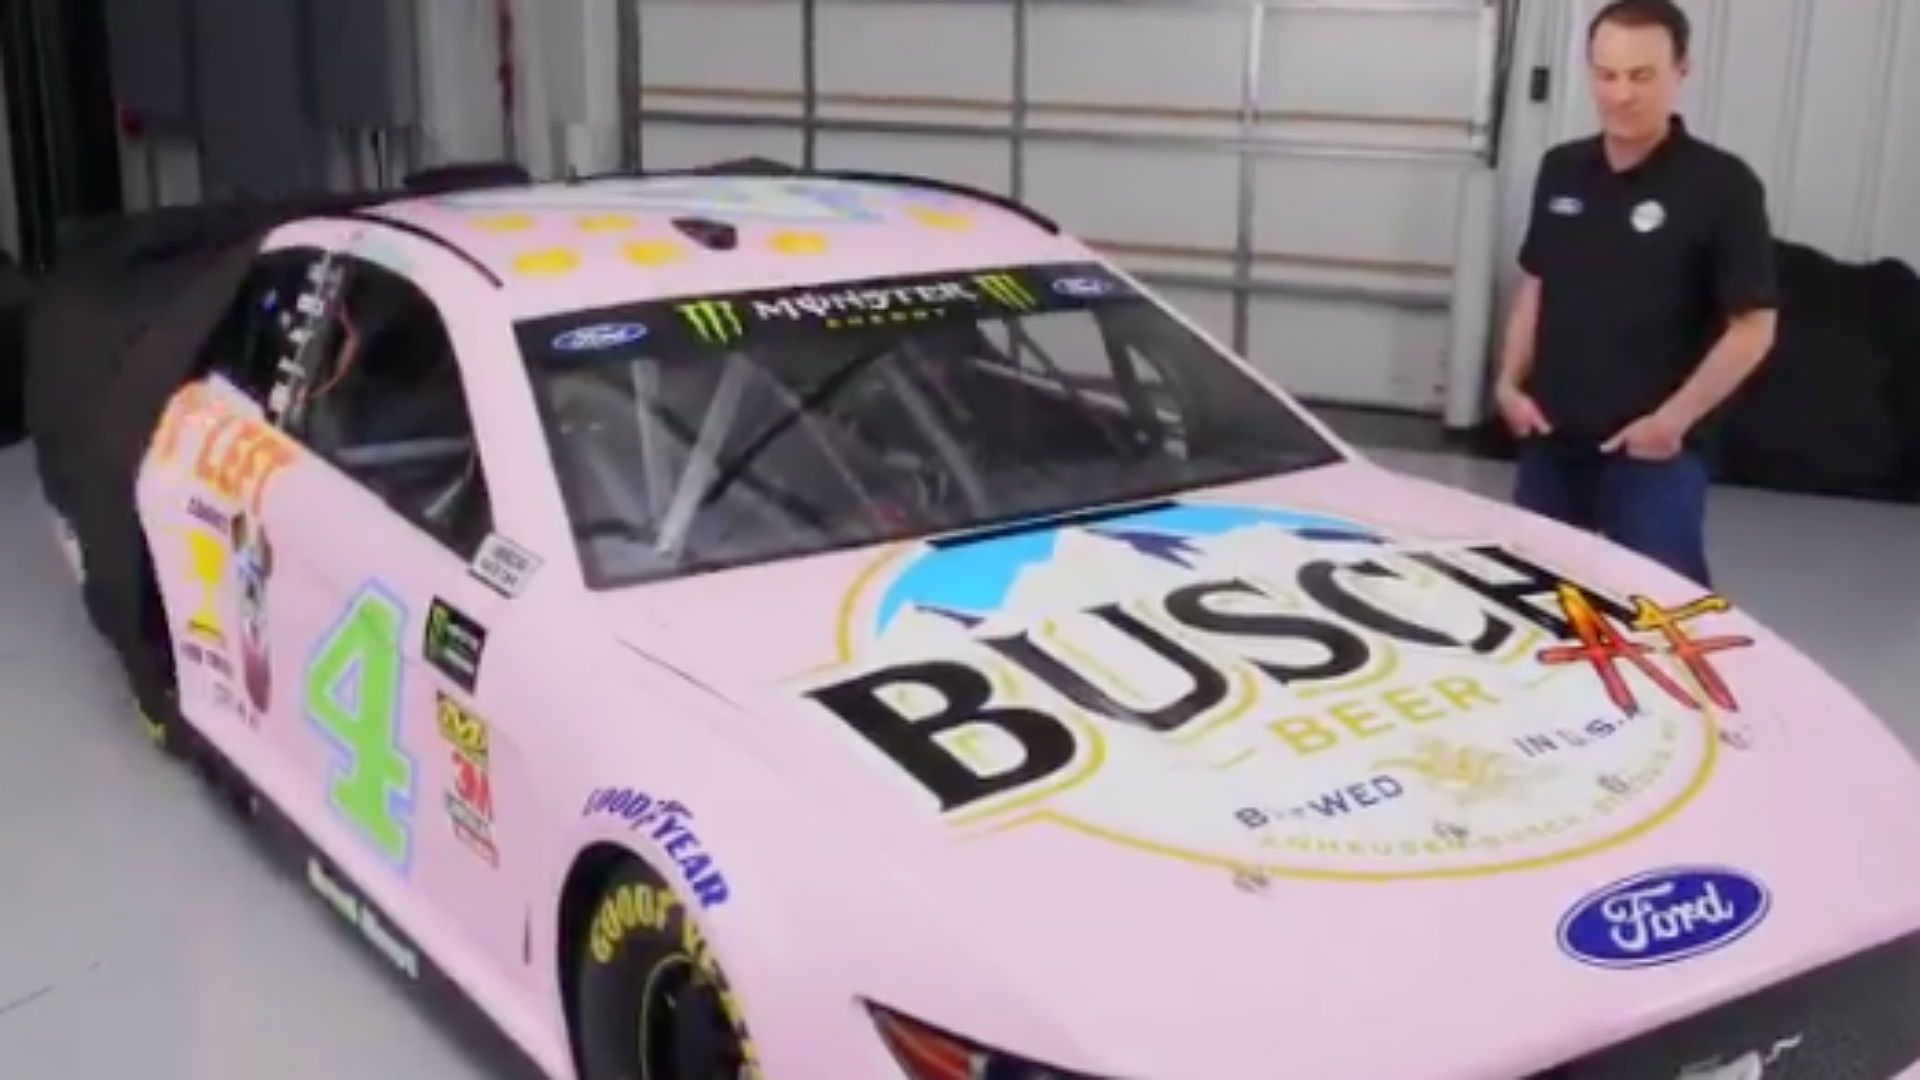 Kevin Harvick really hates his 'millennial' themed car for All-Star race